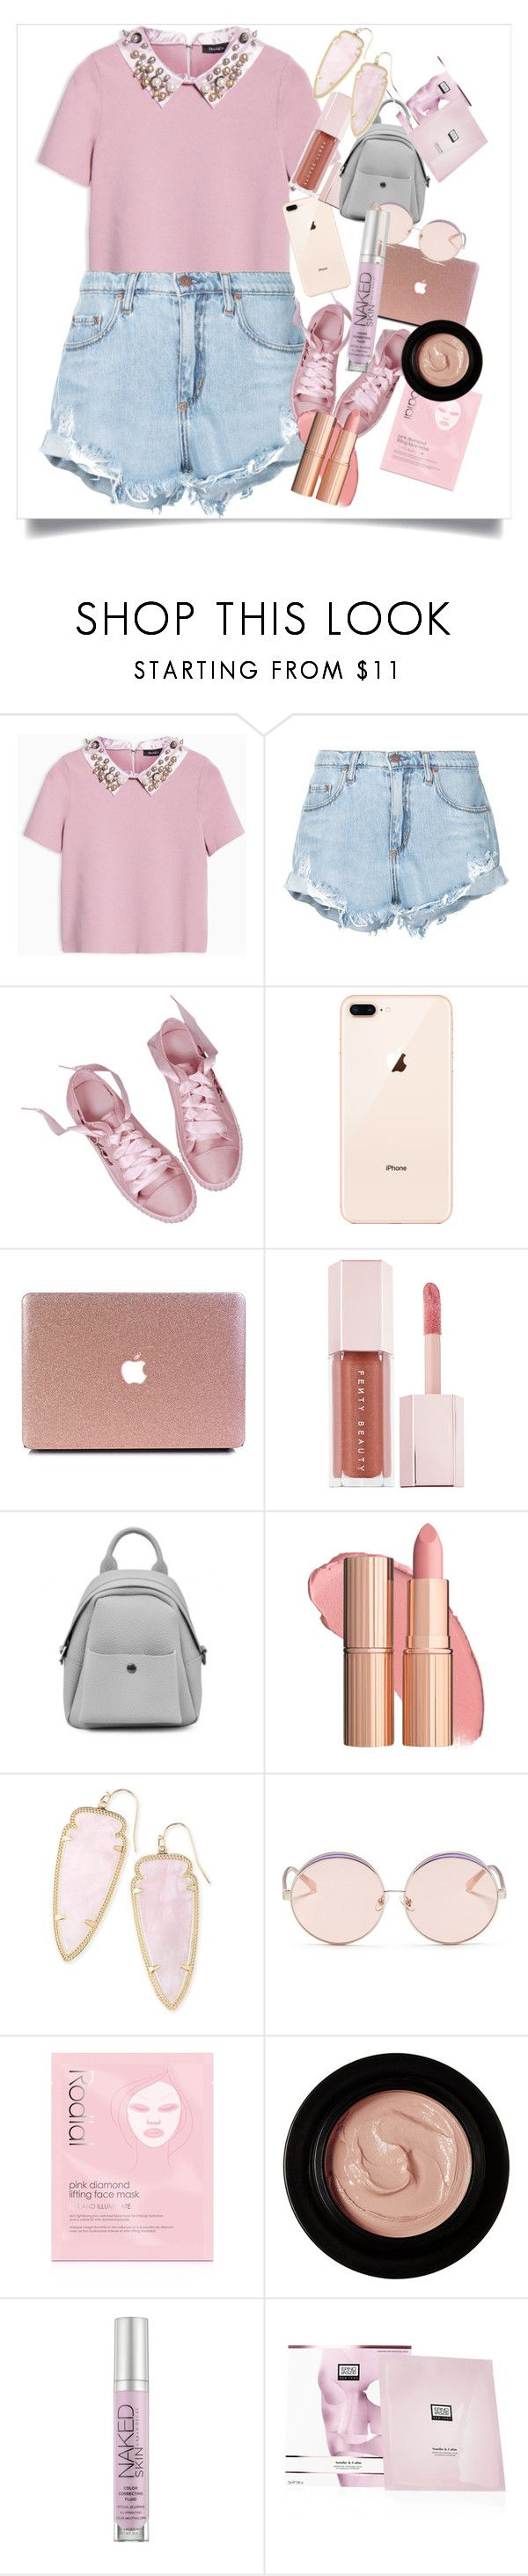 """""""It's Kind Of Fun To Do The Impossible♡"""" by summertime-sadness ❤ liked on Polyvore featuring Max&Co., Nobody Denim, Puma, Kendra Scott, N°21, Rodial, Edward Bess, Urban Decay and Erno Laszlo"""